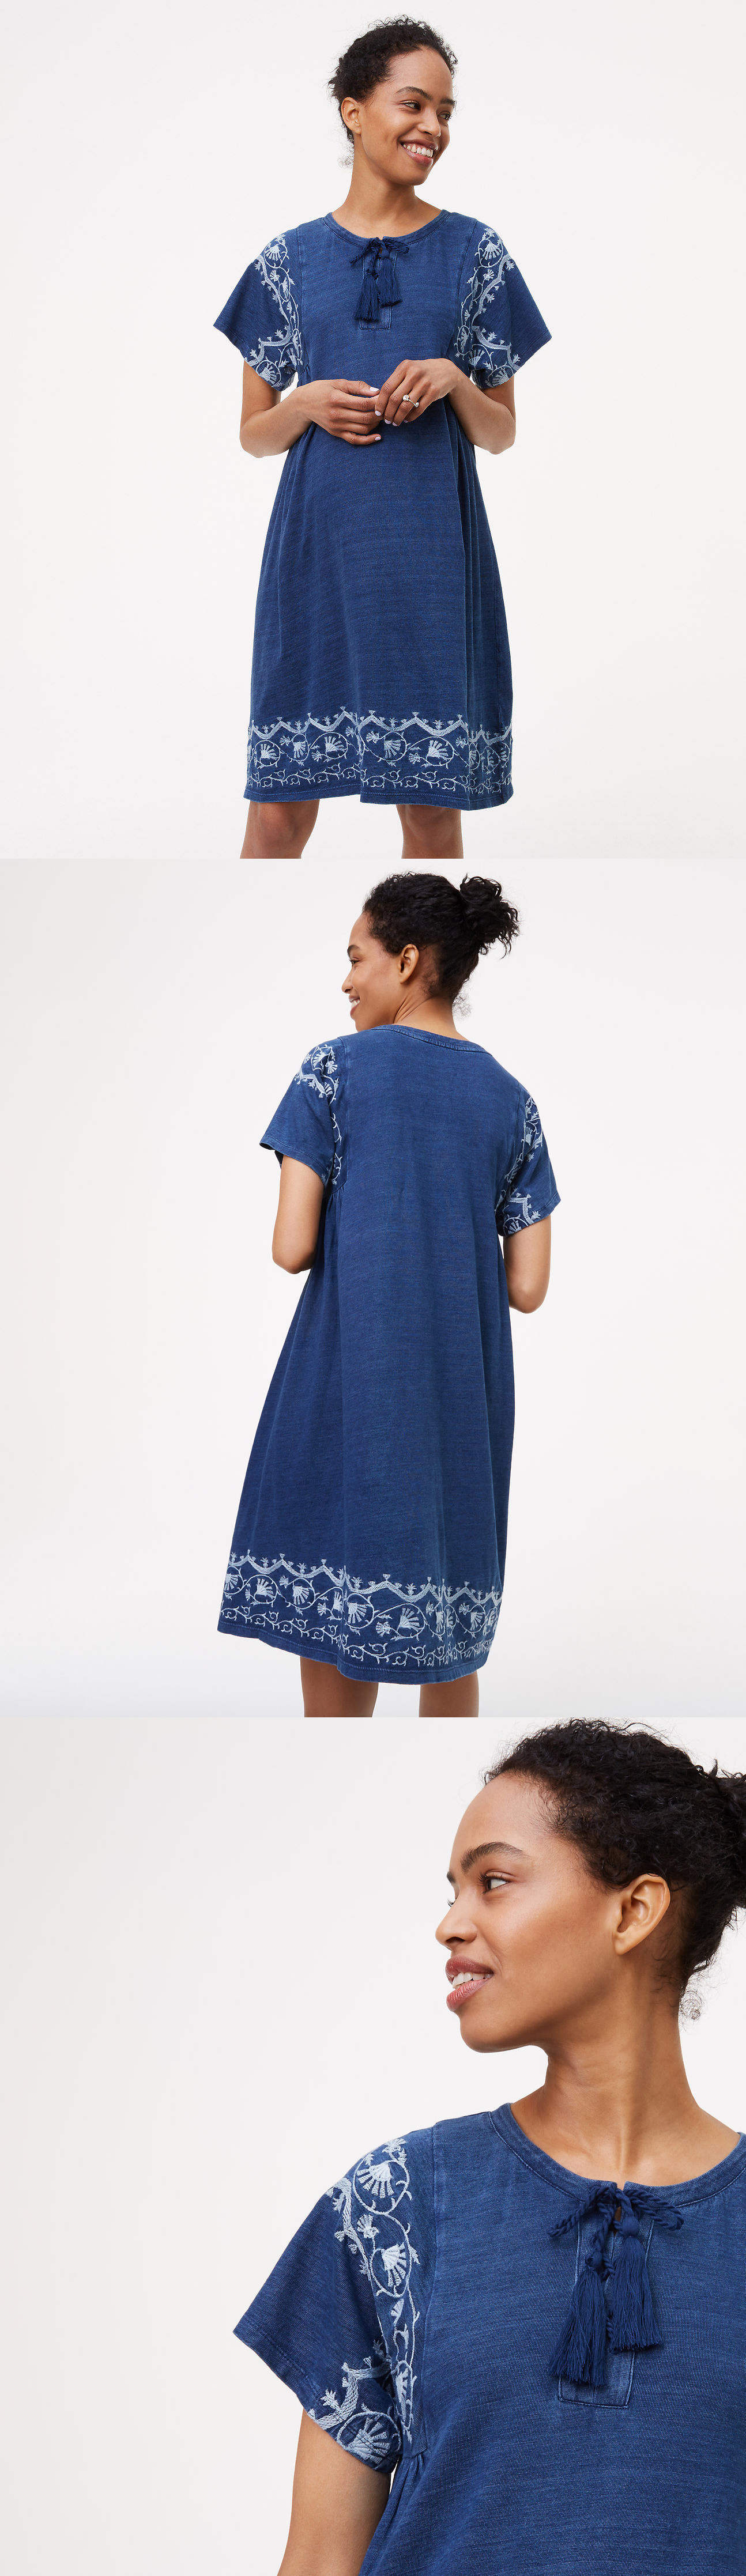 Dresses 11534 ann taylor loft maternity dress xs s blue cotton dresses 11534 ann taylor loft maternity dress xs s blue cotton floral embroidered tassel new ombrellifo Images